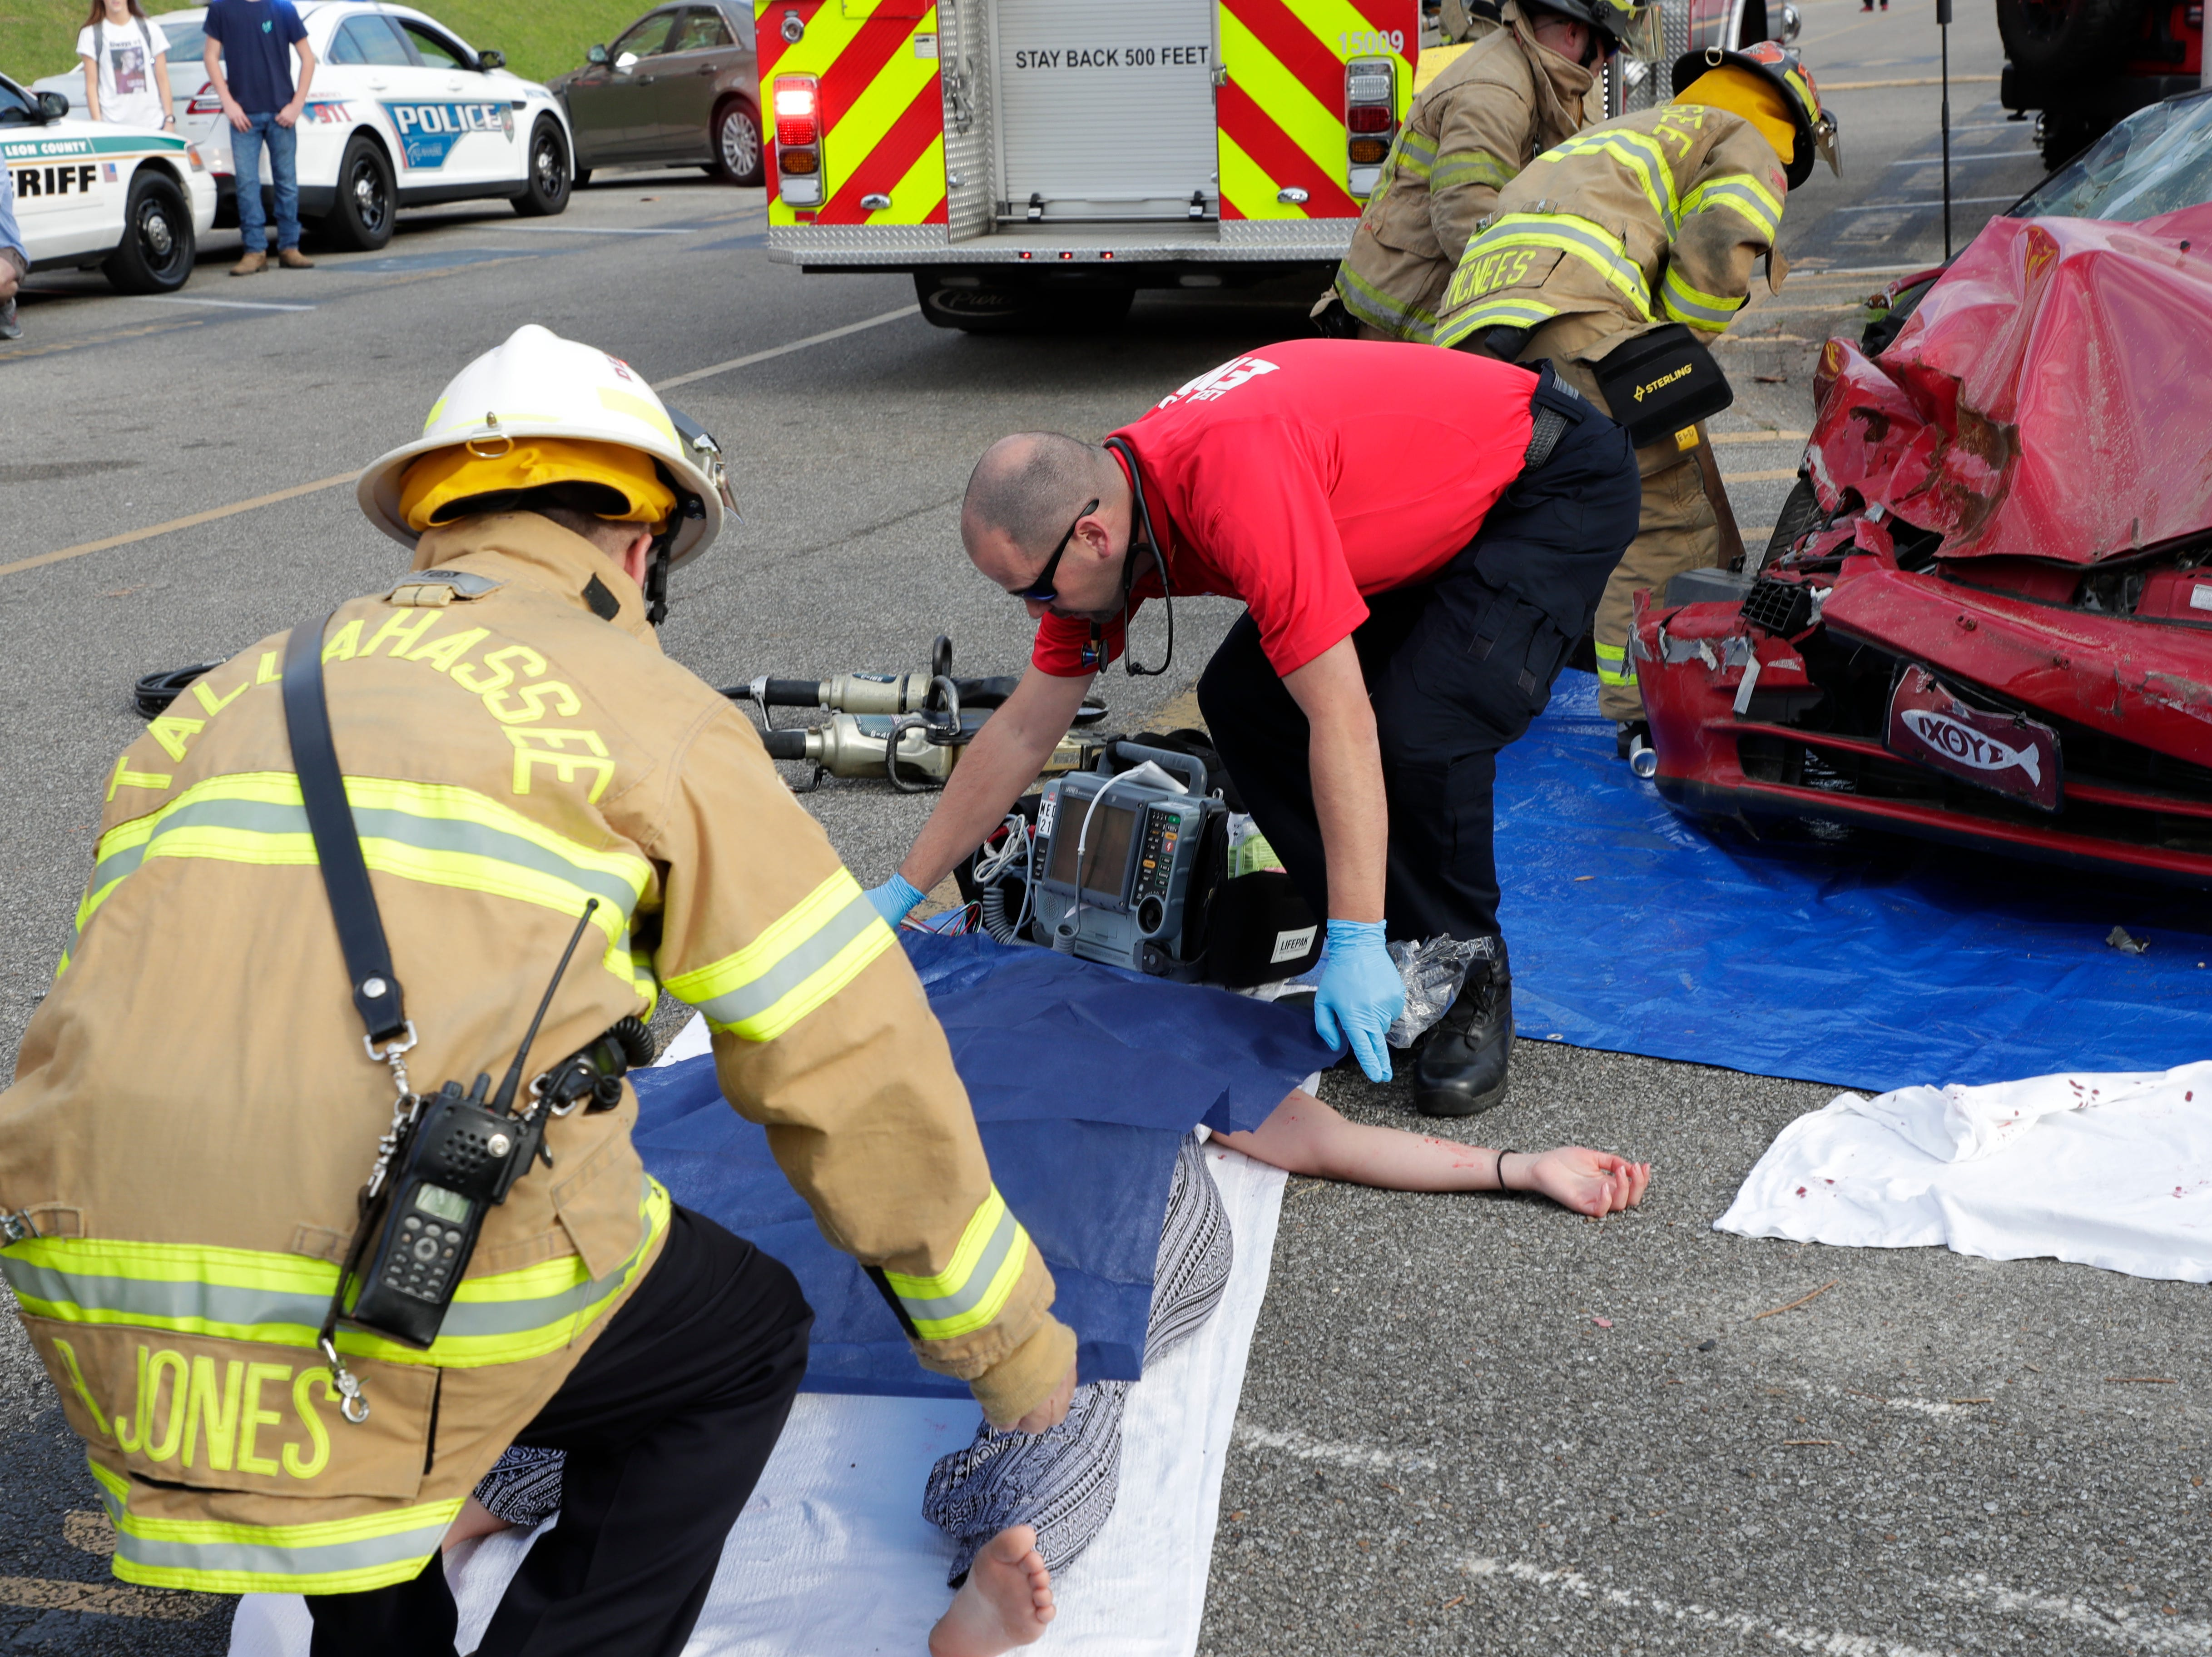 A Leon County firefighter and Leon County EMS paramedic drape a tarp over Christina Huettel as she portrays being killed in a drinking and driving accident. Leon High School partners with the county safety officials to give a simulation on the consequences of drunk driving before the students leave for spring break Friday, March 15, 2019.